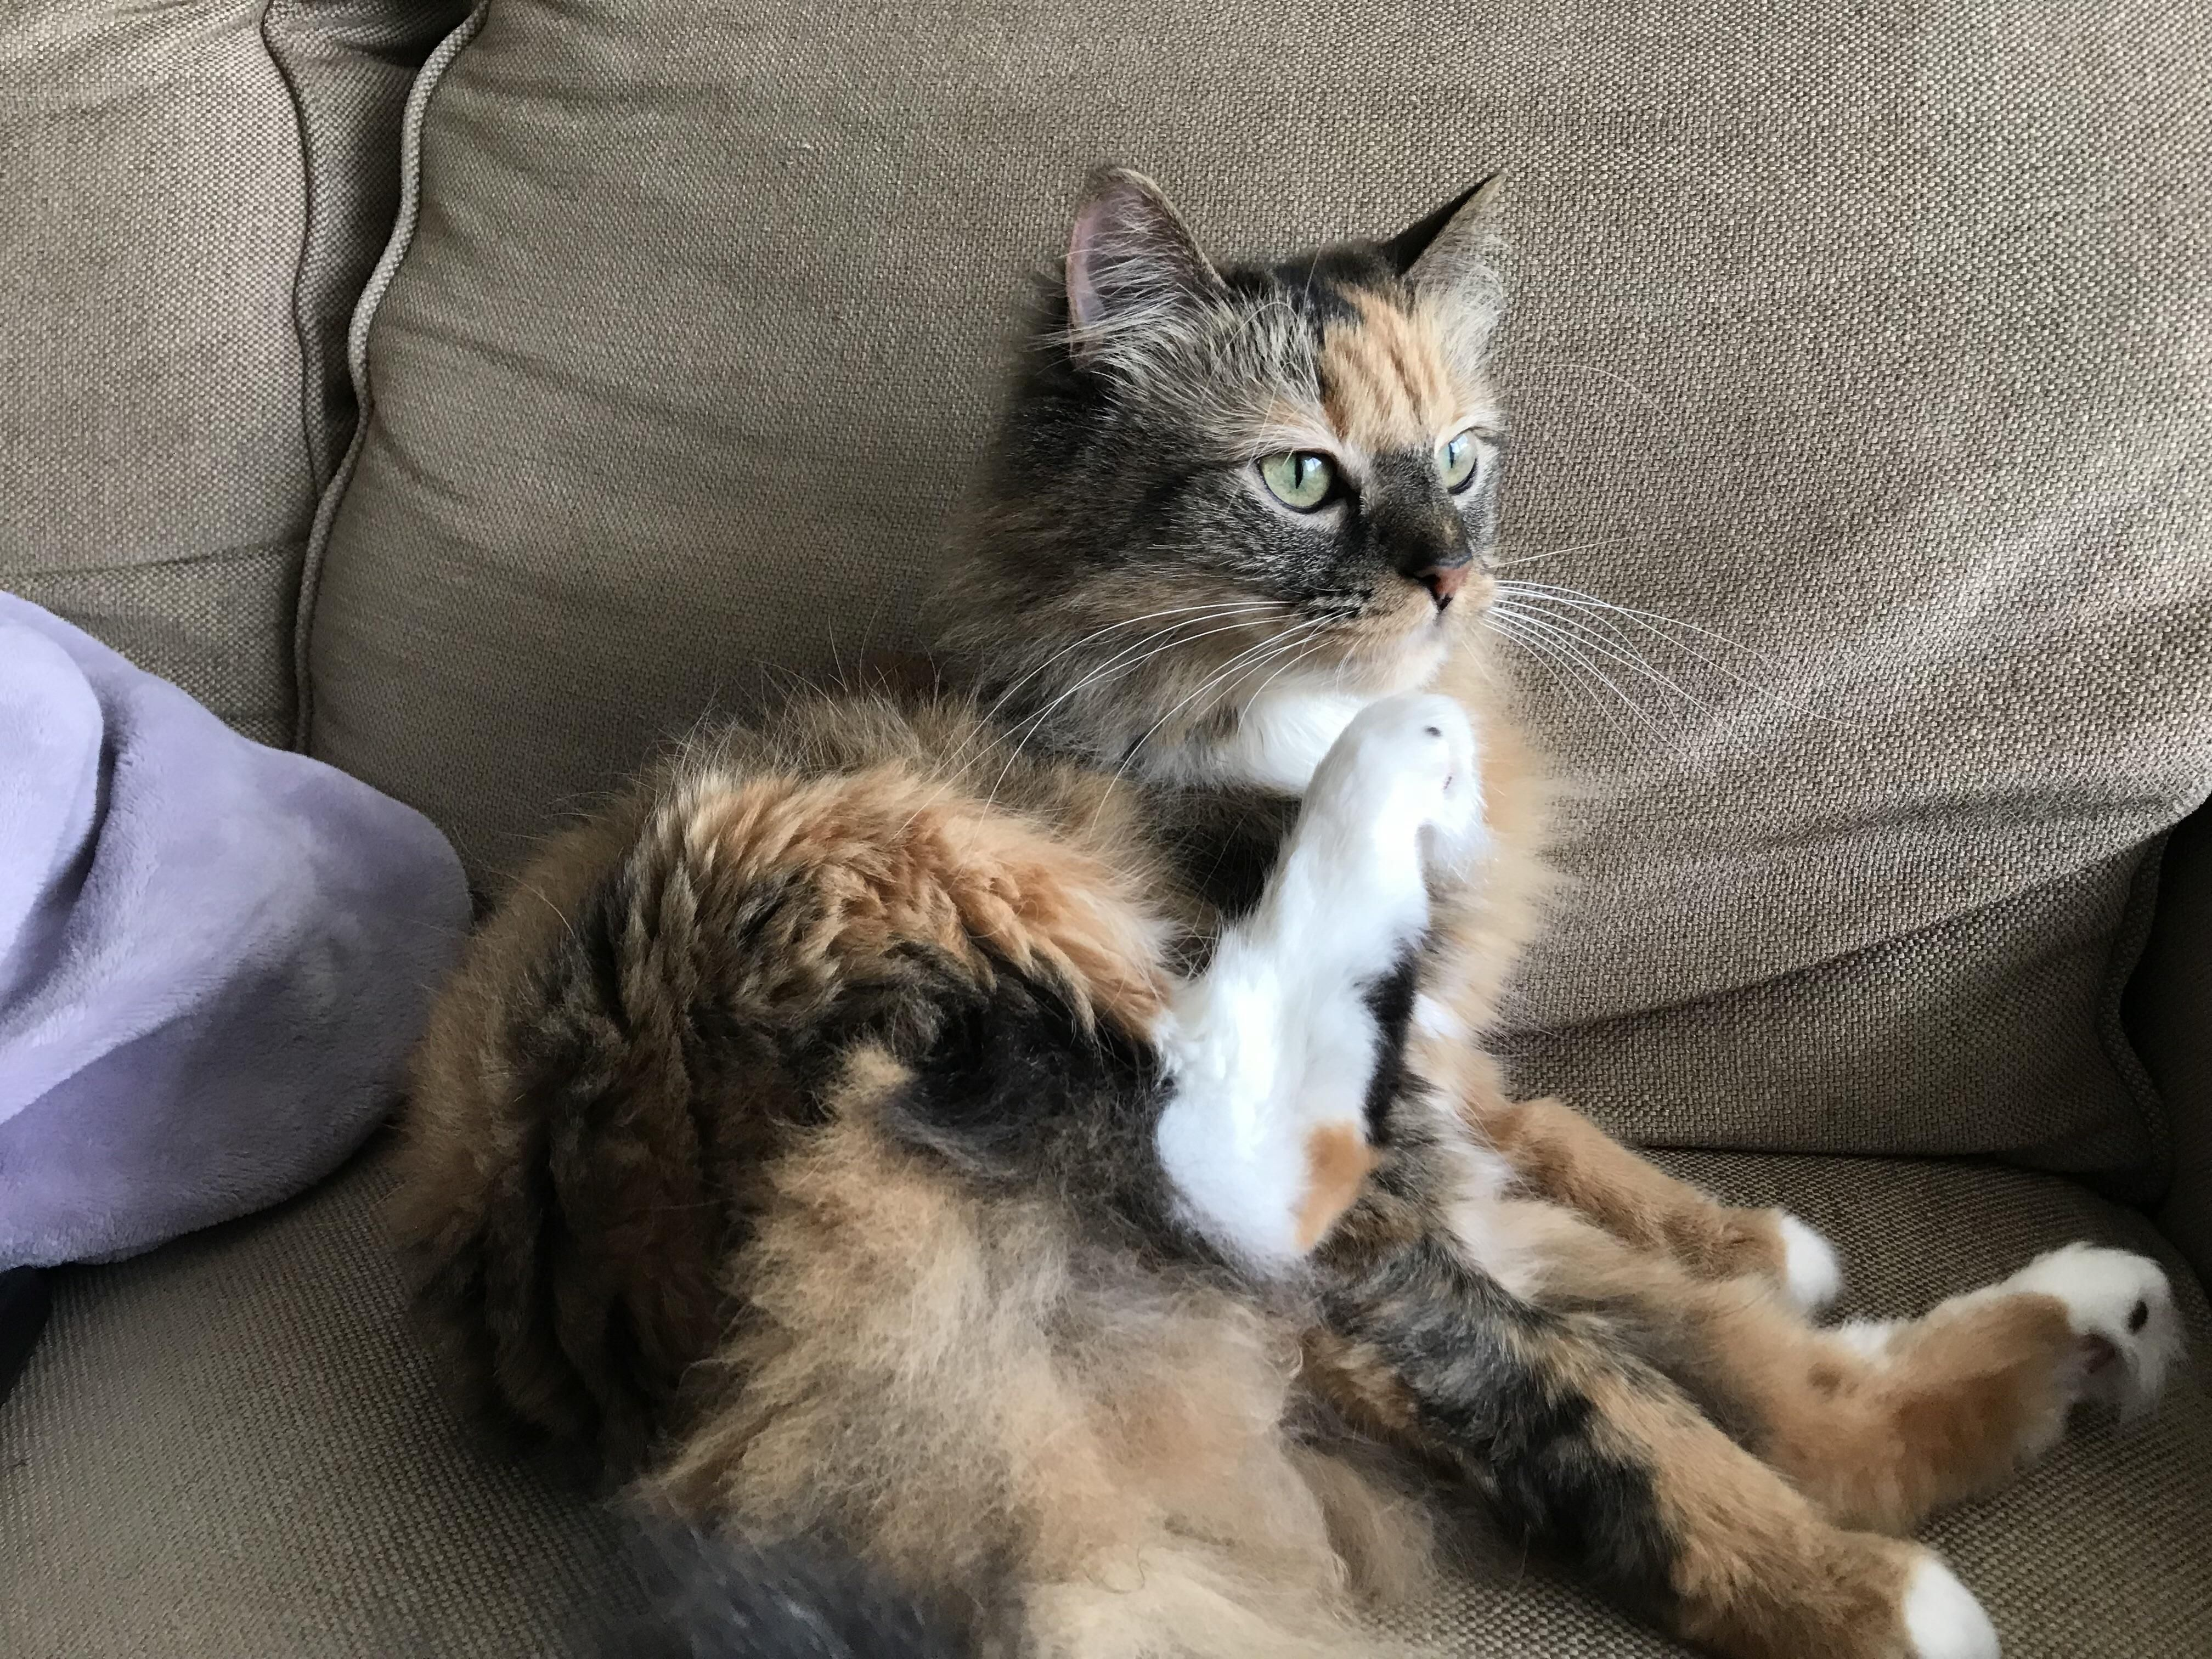 Settle A Debate Is Lily A Calico Or Tortoiseshell More Pics In Comments Kittens Cutest Pretty Cats Baby Cats